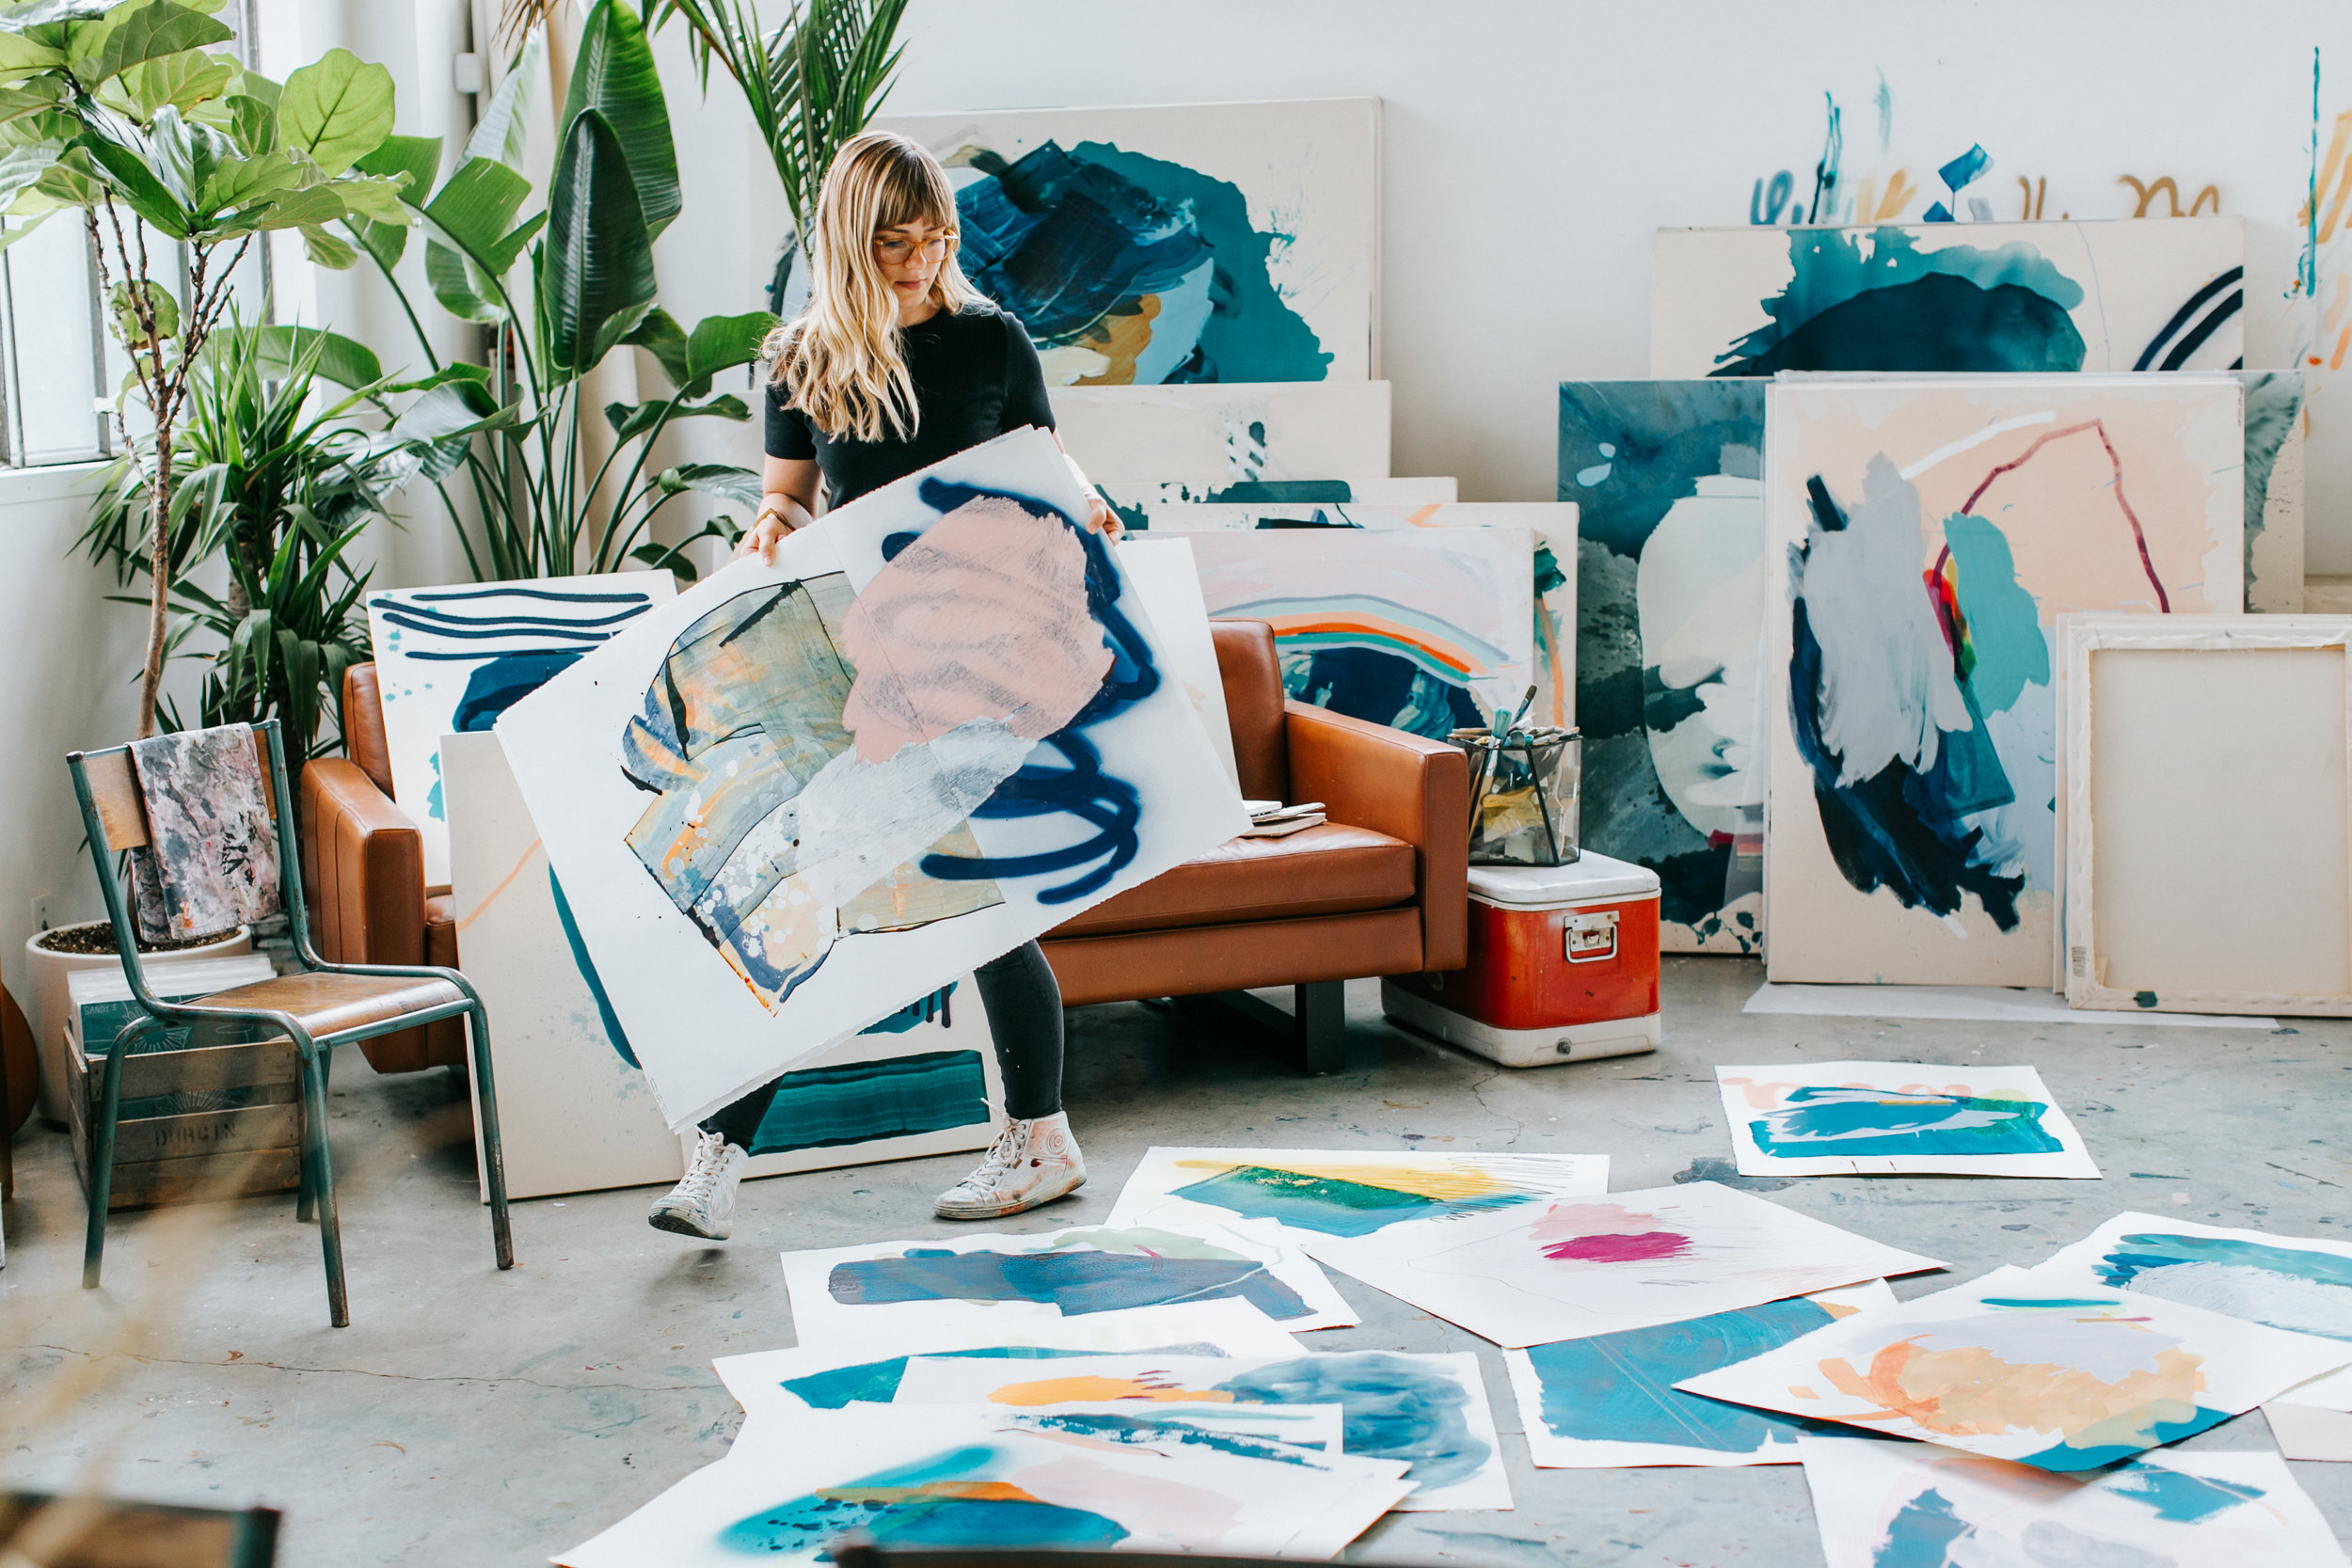 Heather Day in her San Francisco Live/Work Space